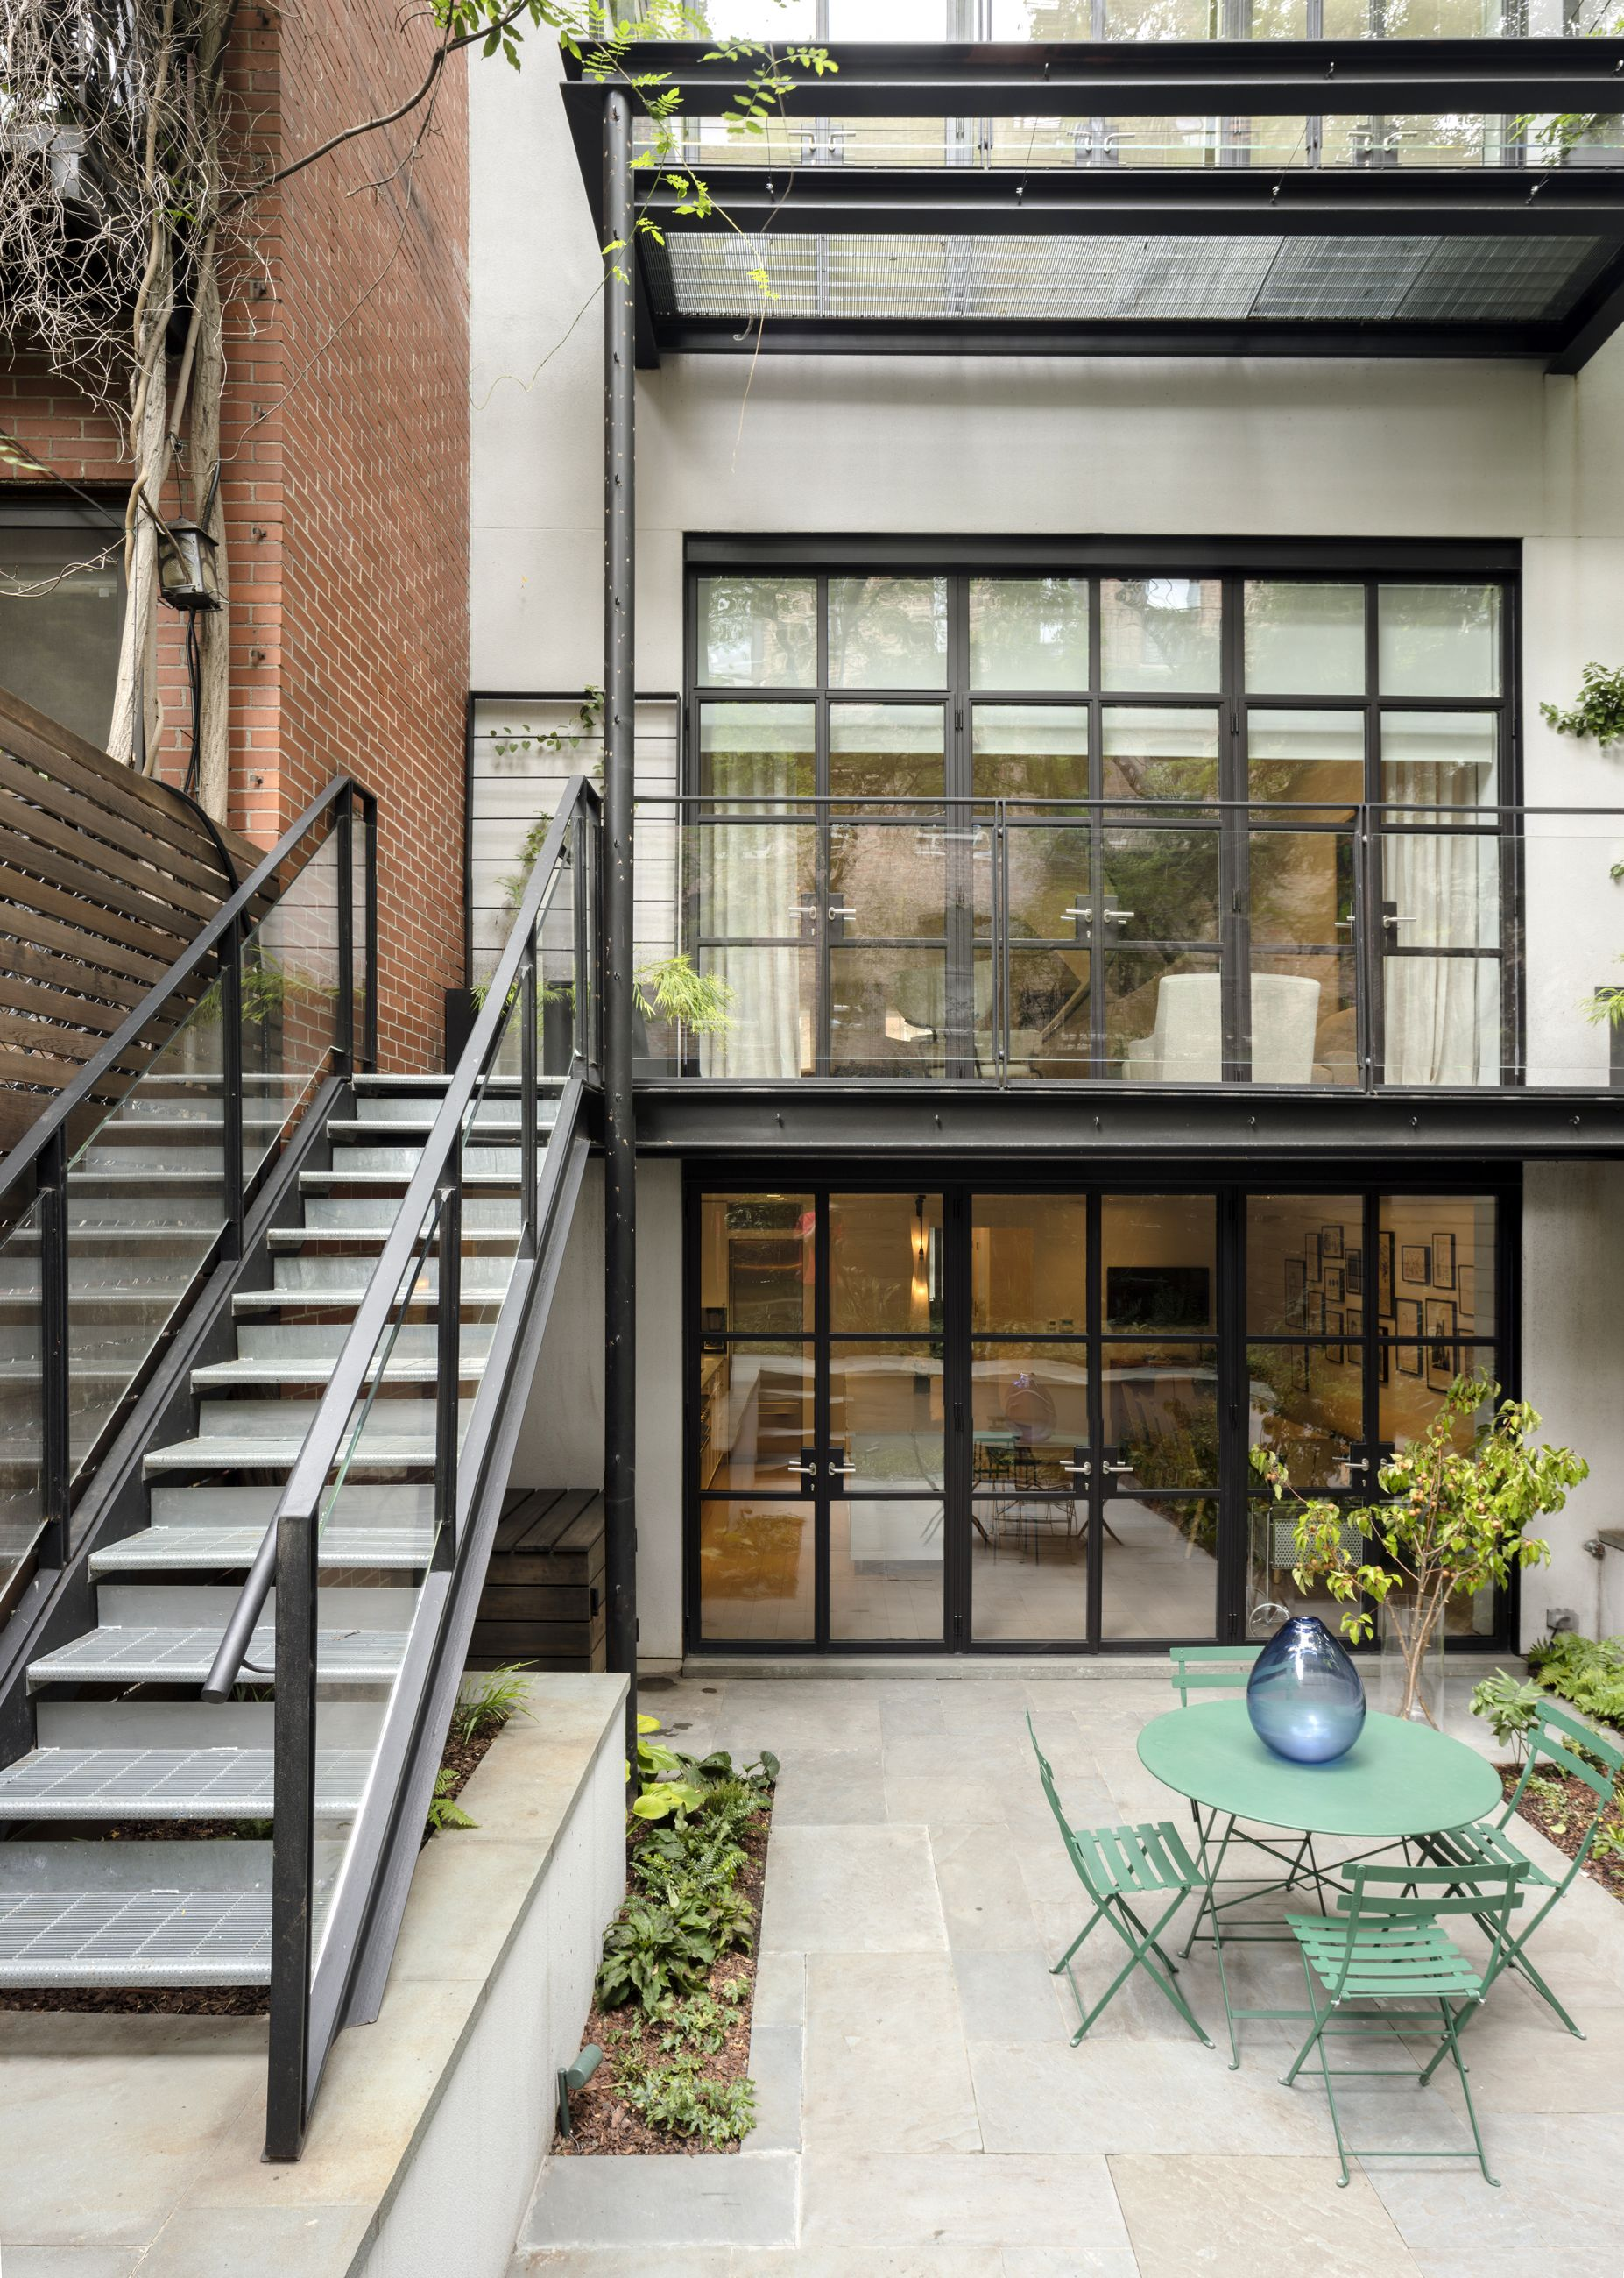 Lit Palette Design Chelsea Townhouse - Selldorf Architects - New York